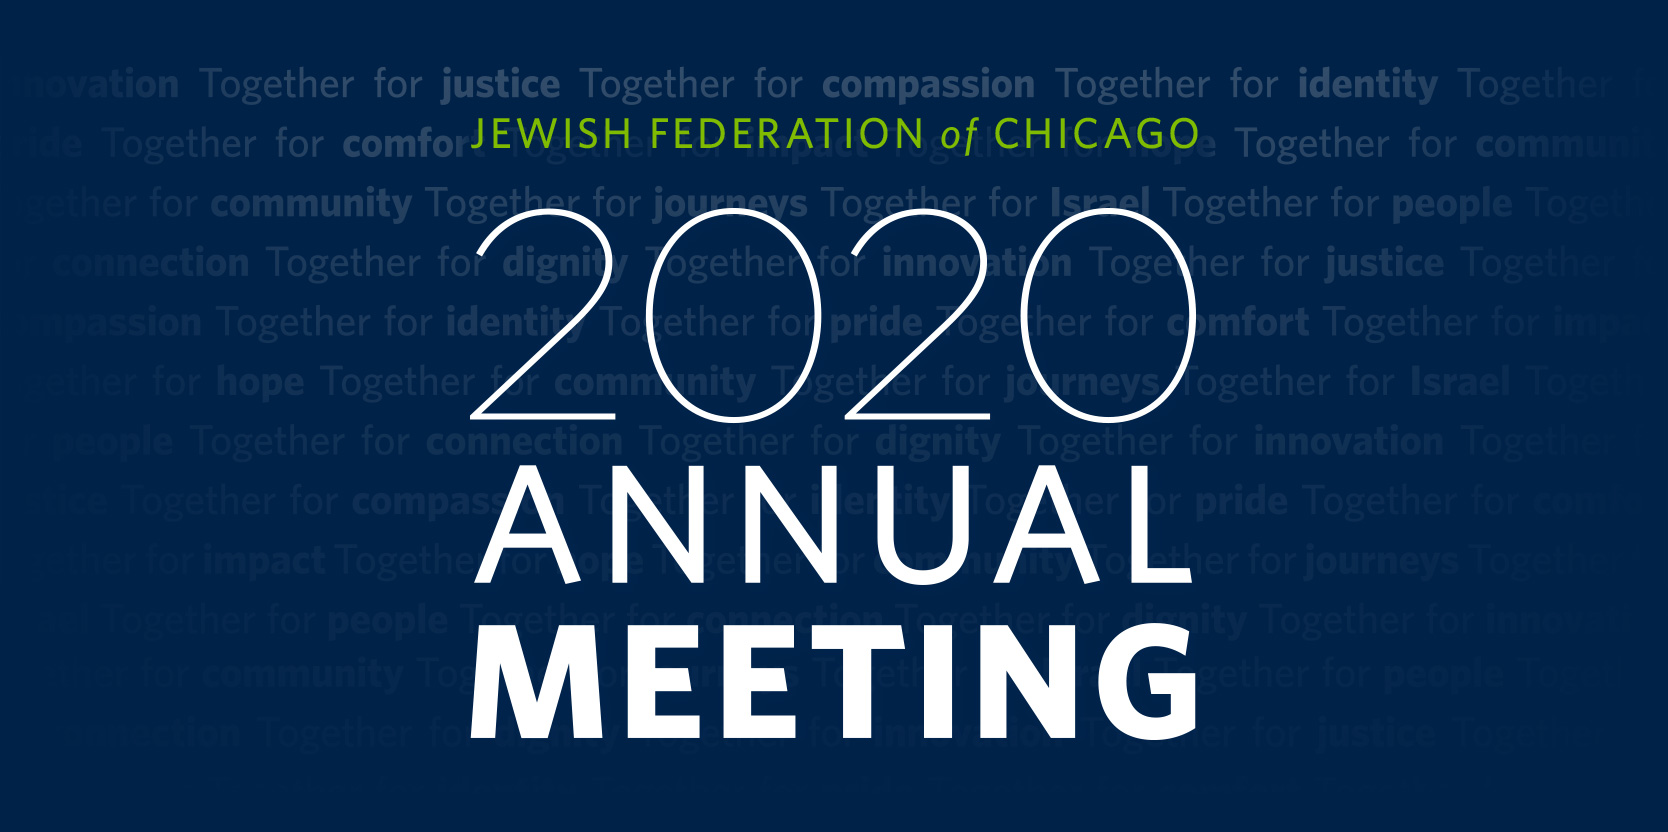 JUF Chicago annual meeting ChiTribe